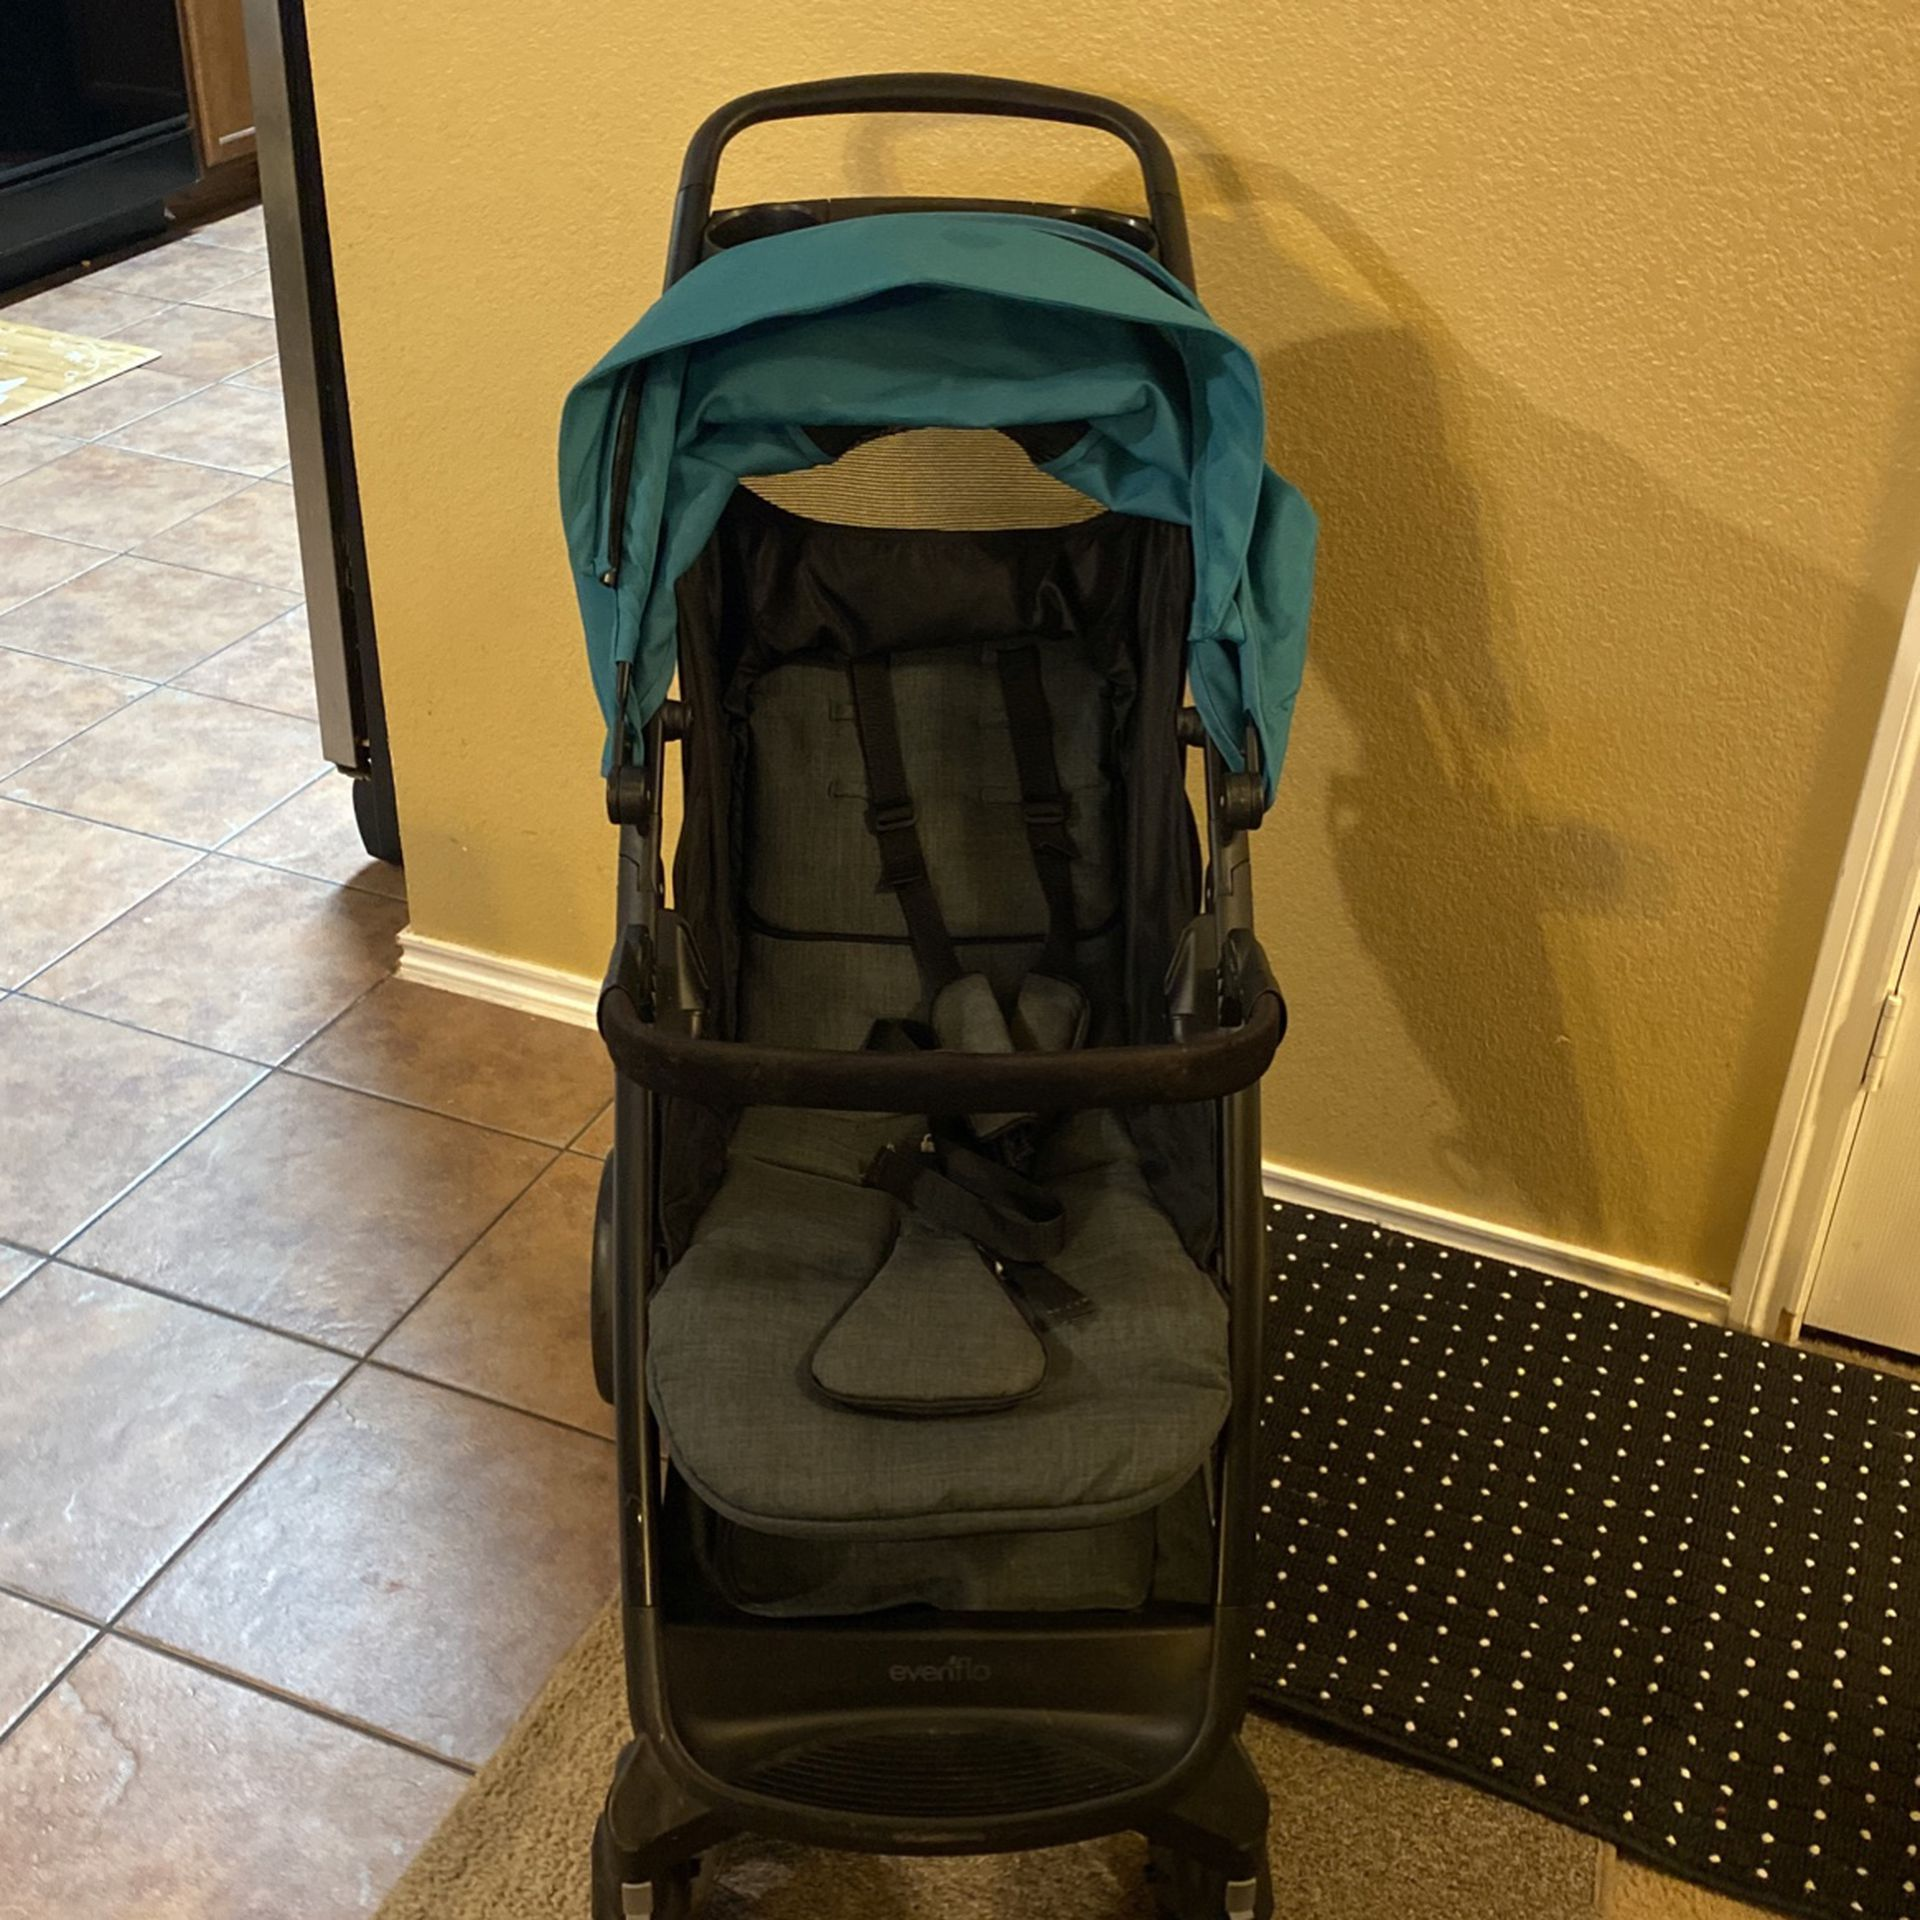 Even gol Baby Stroller Compact Comfy